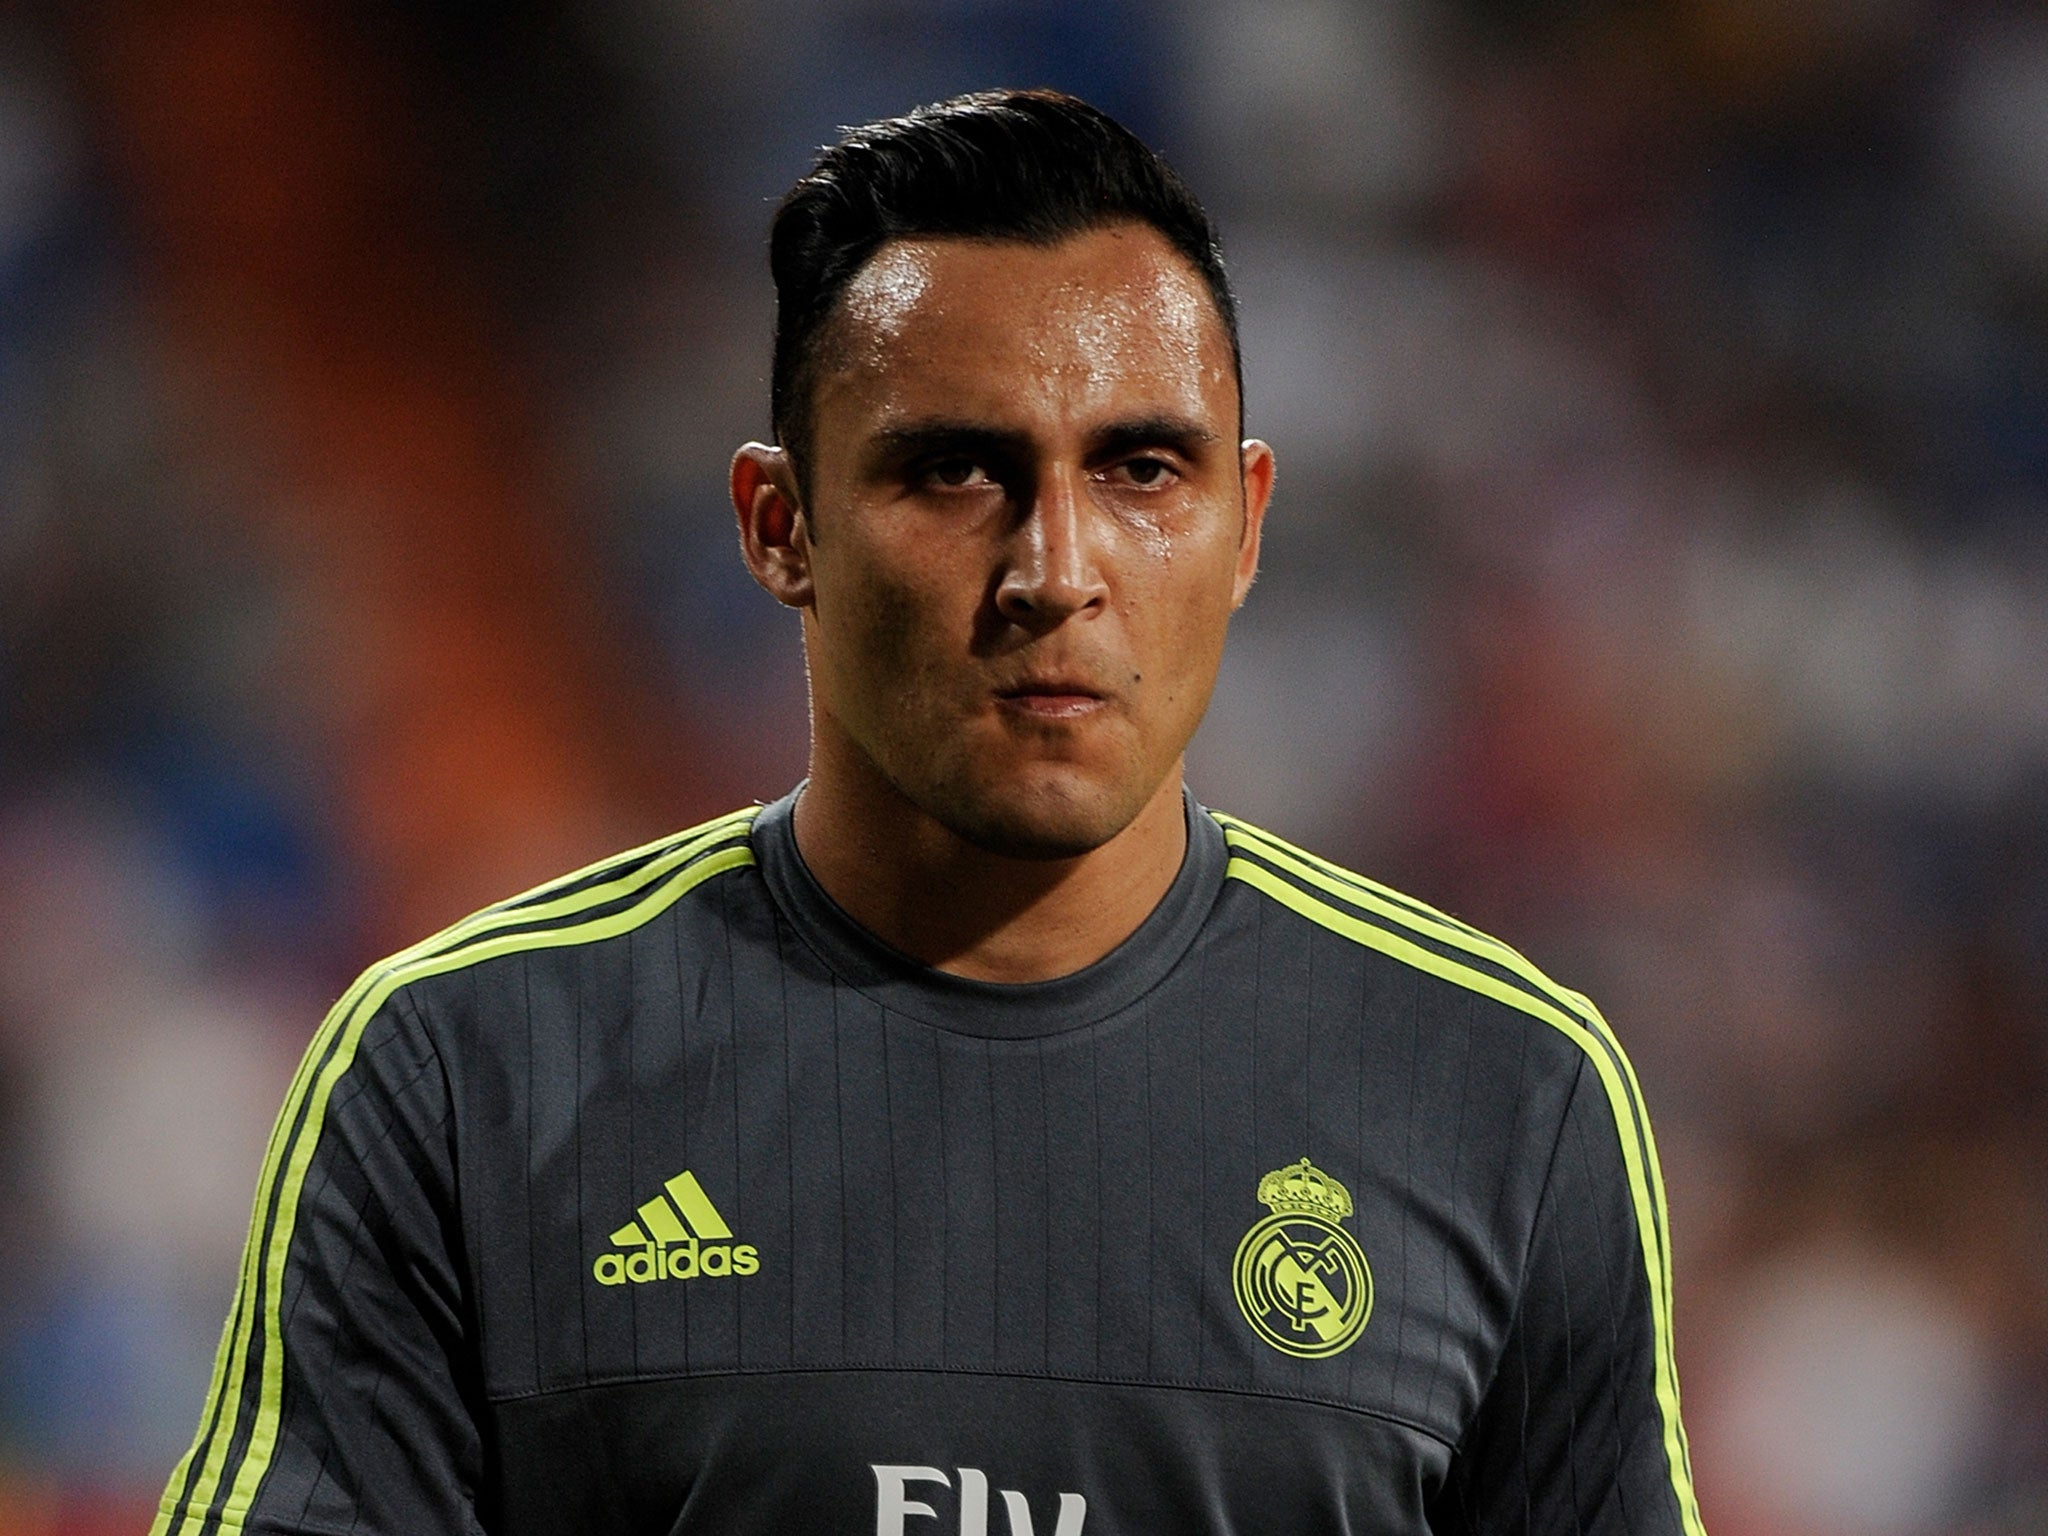 keylor navas reveals he cried when manchester united